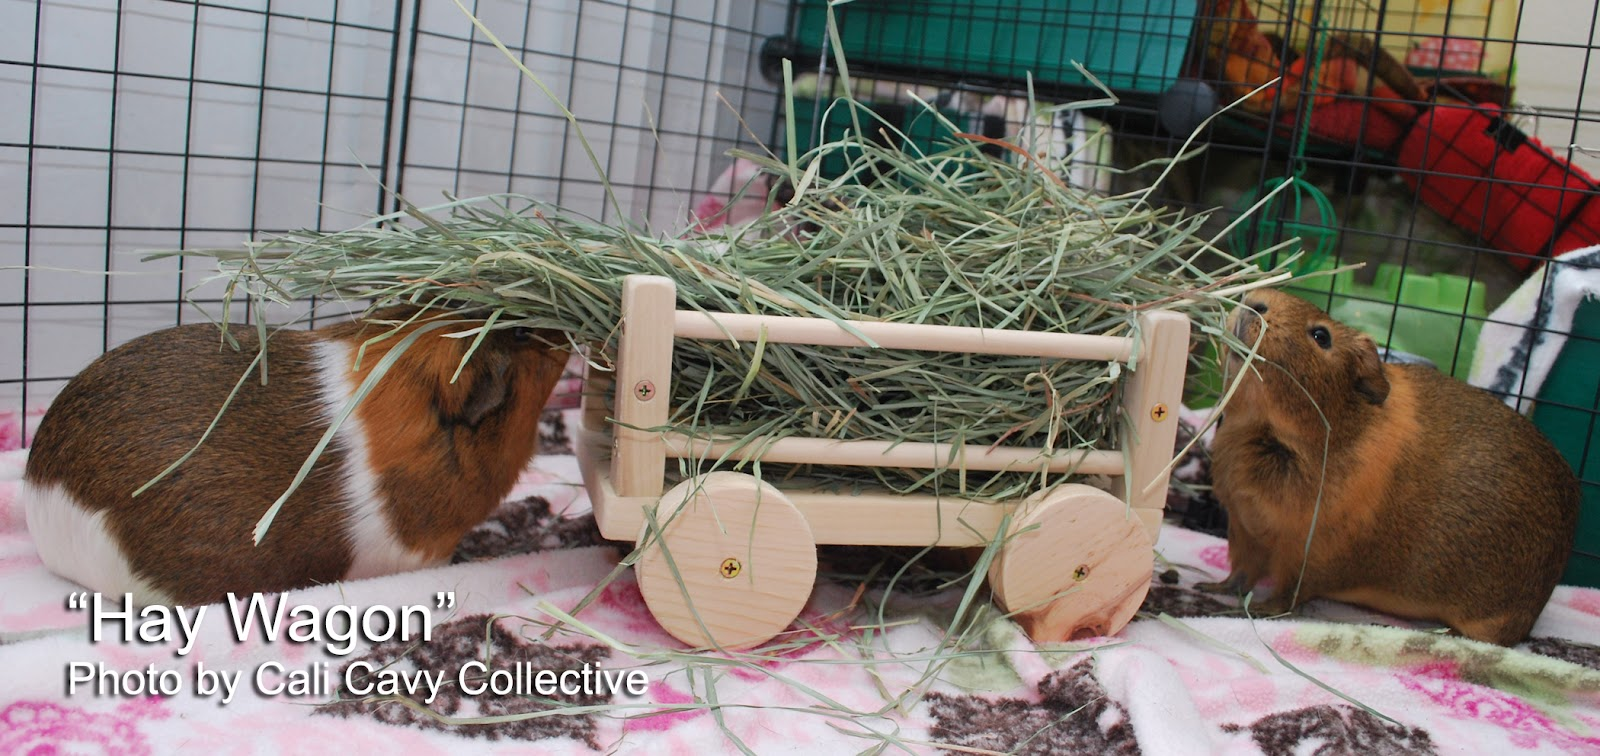 Cali cavy collective a blog about all things guinea pig wooden if you would like to order one for your guinea pig or find out more check out wheek boutique on etsy or email guineapighousesyahoo jeuxipadfo Gallery